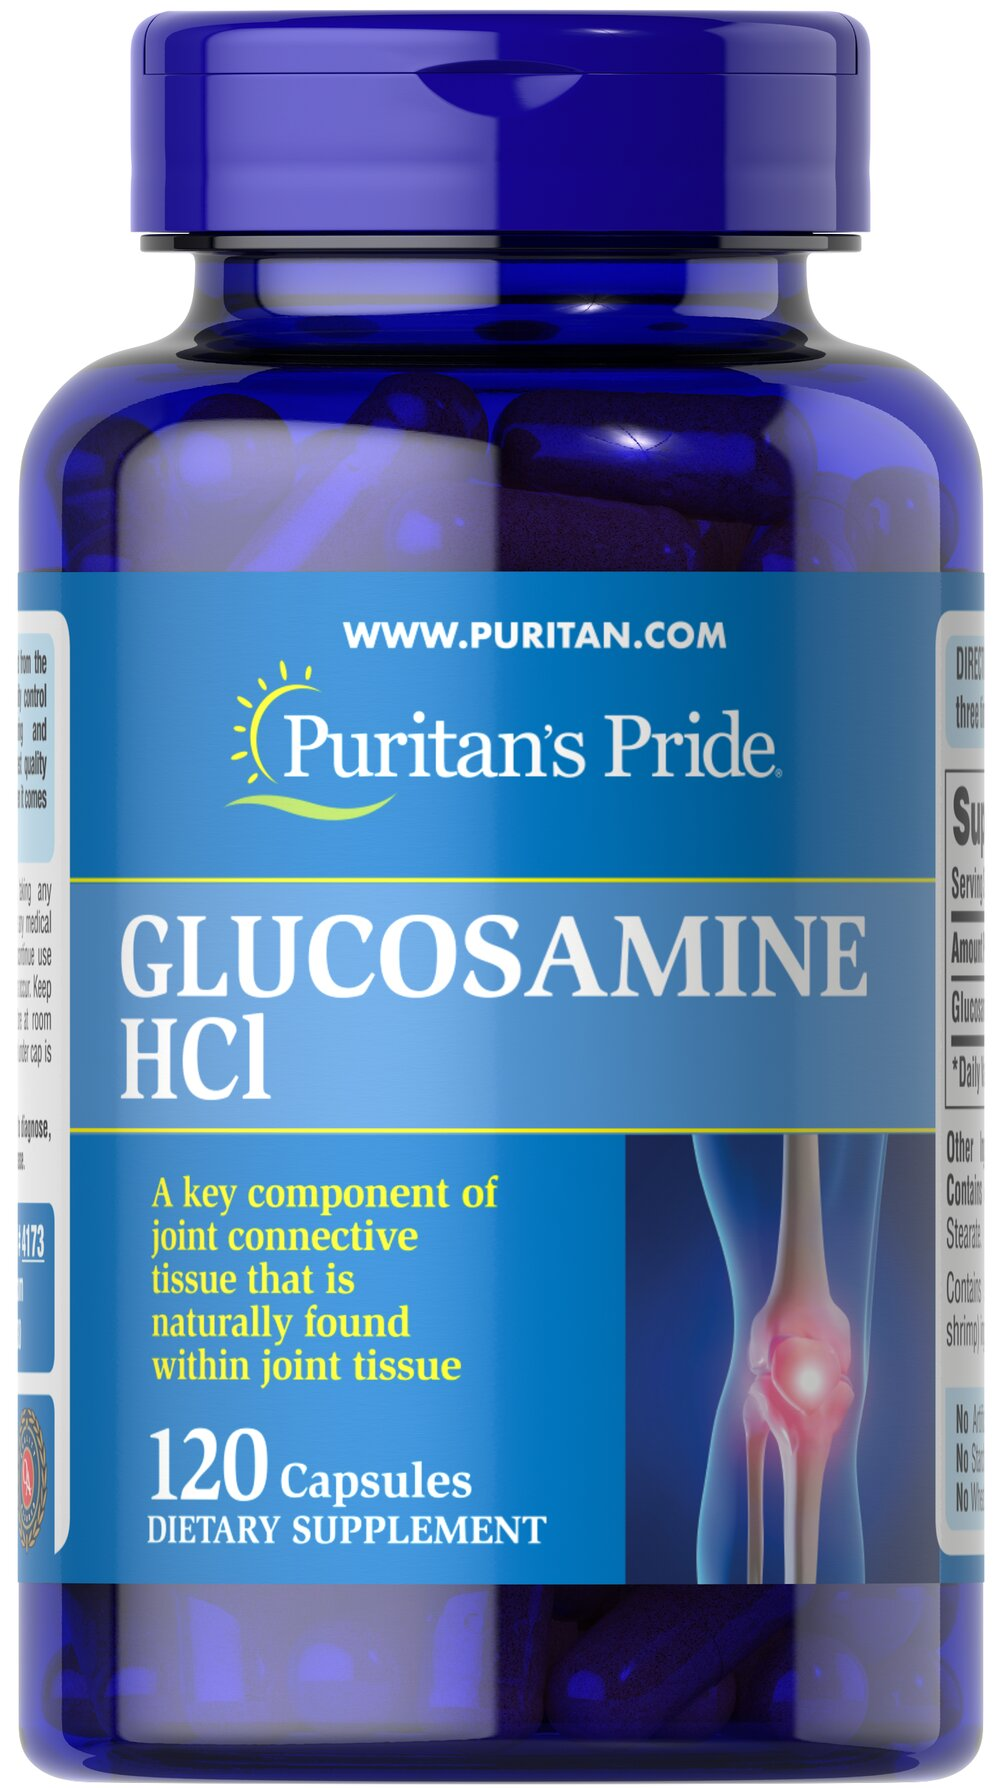 Glucosamine Sulfate 1000 mg <p>Promotes Healthy Joints**</p><p>Supports Cartilage Maintenance**</p><p>As a key ingredient in cartilage, Glucosamine plays an important role in good joint health and helps promote healthy joints and cartilage maintenance.** Studies indicate that Glucosamine provides the building blocks for constructing cartilage.** Our Glucosamine Sulfate capsules are perfect for anyone desiring extra nutritional support for cartilage and joints.**<